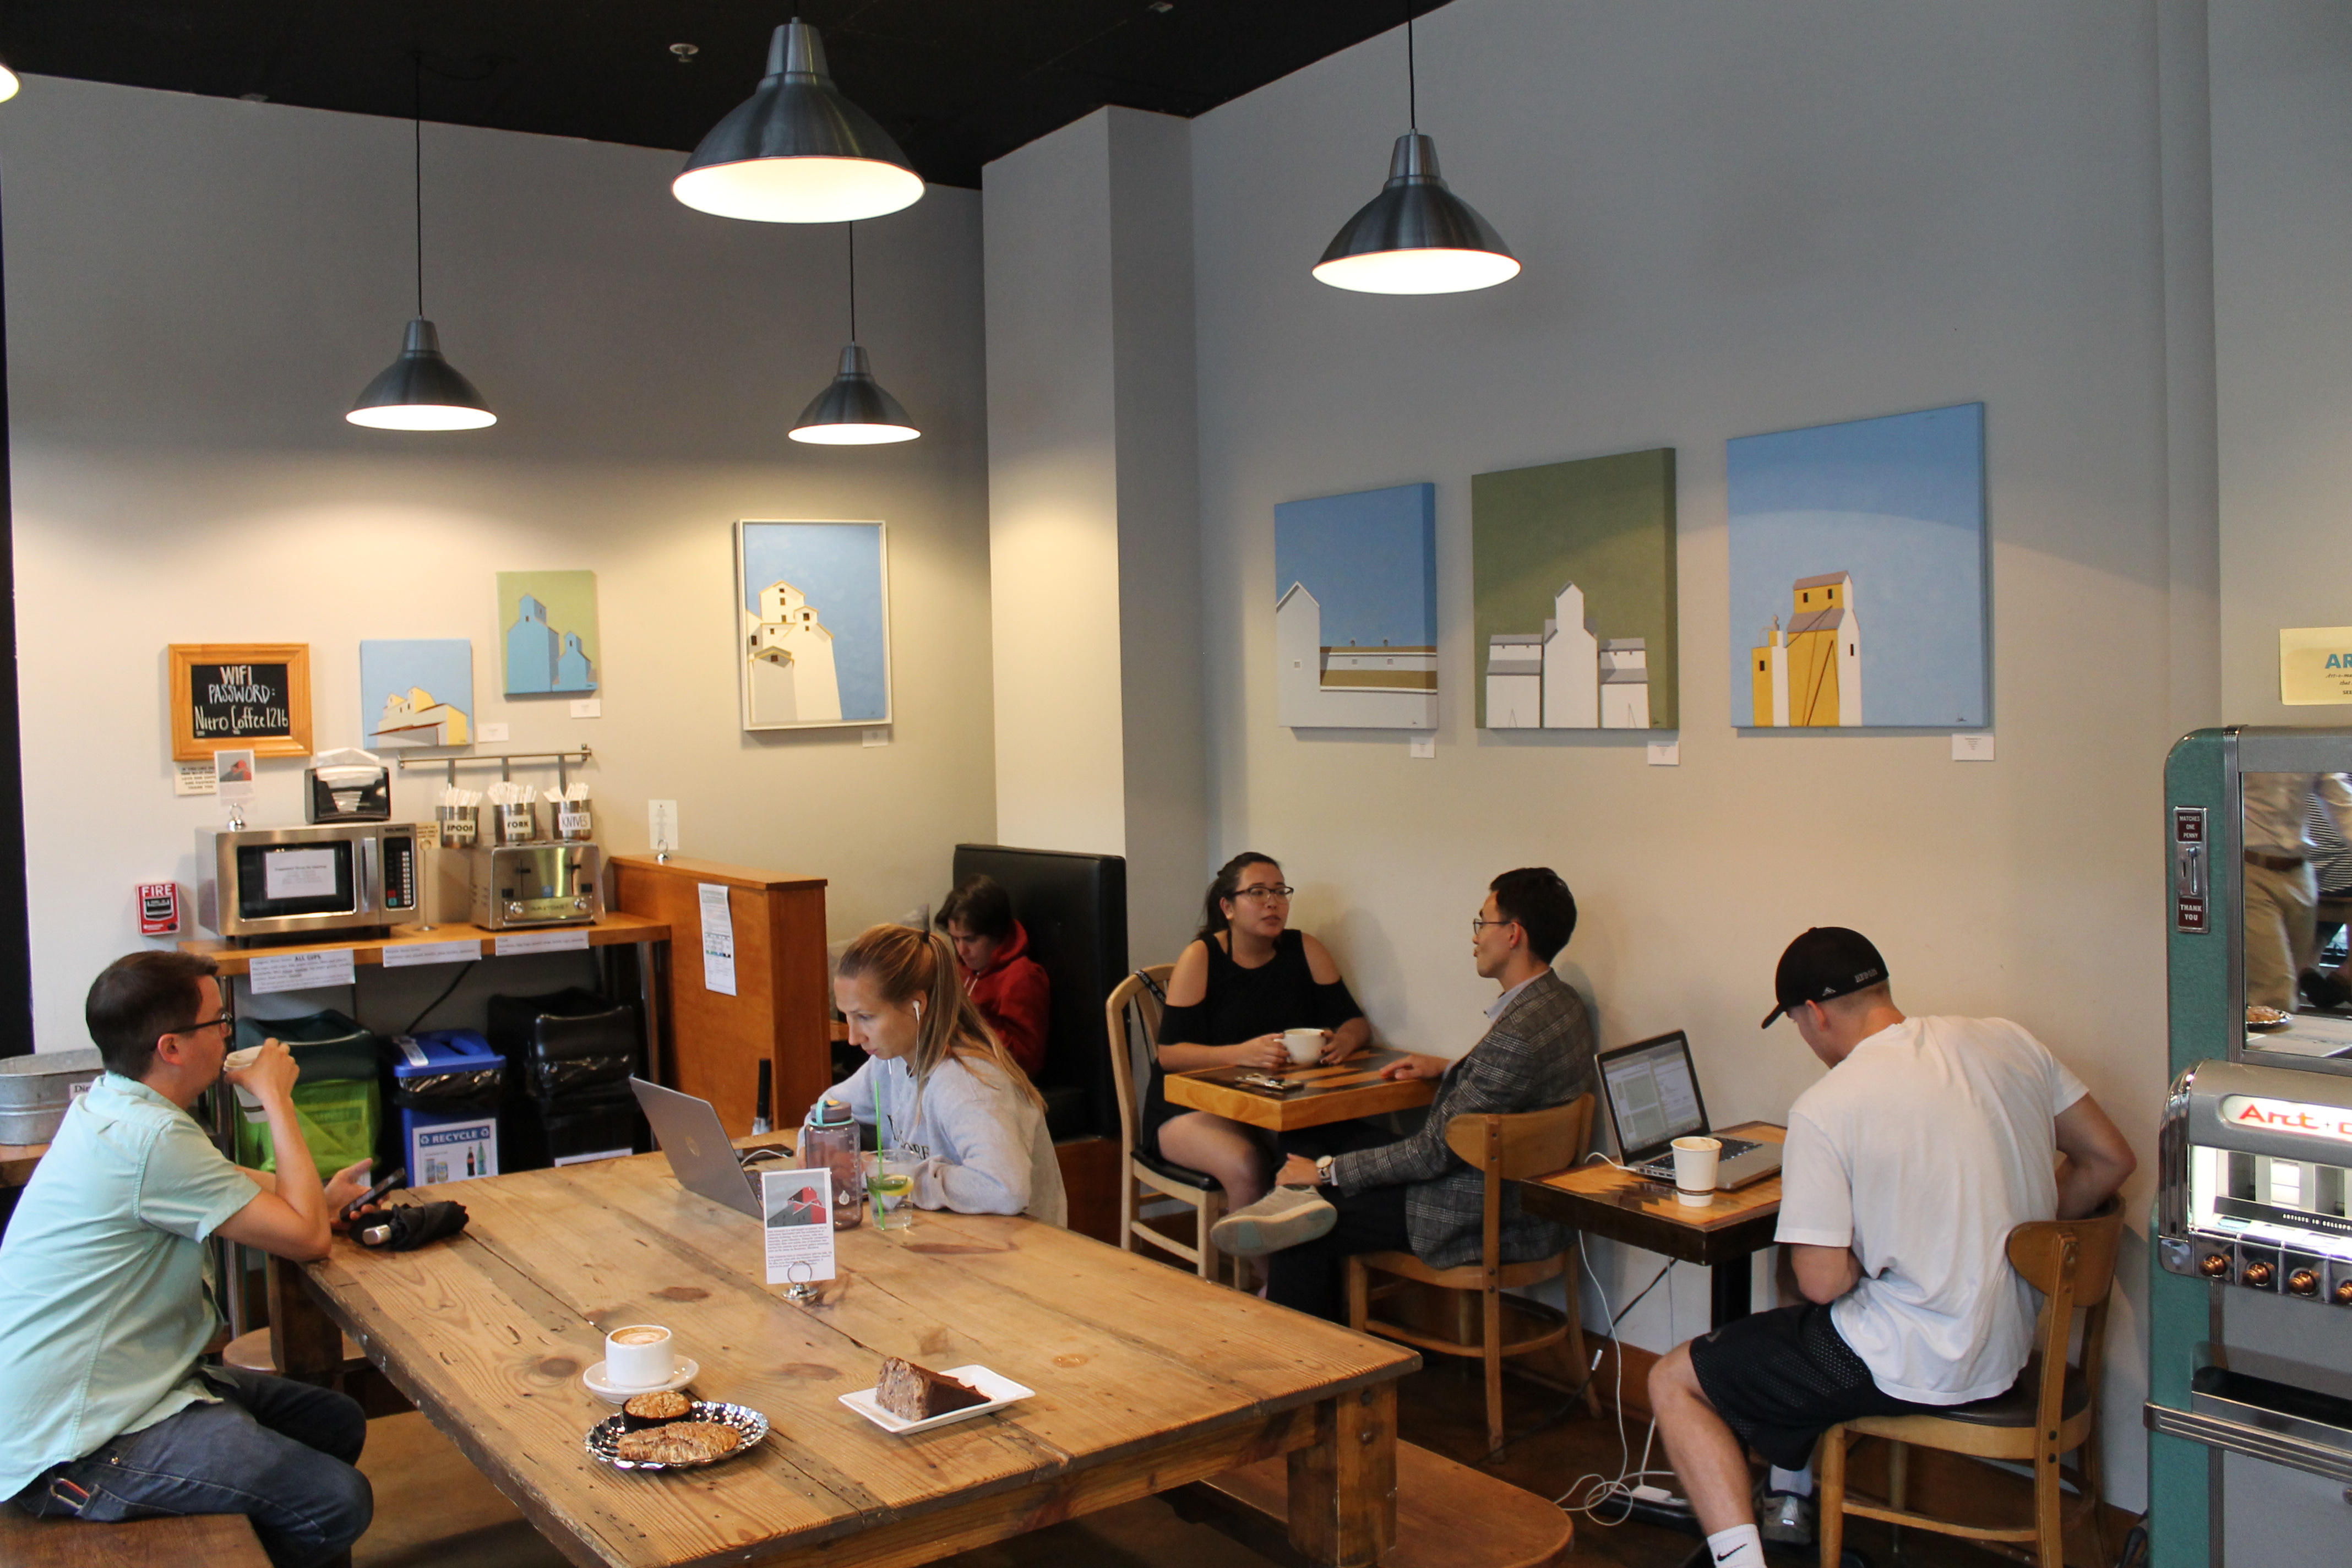 Interior of camino bakery, people sitting by paintings and art machine